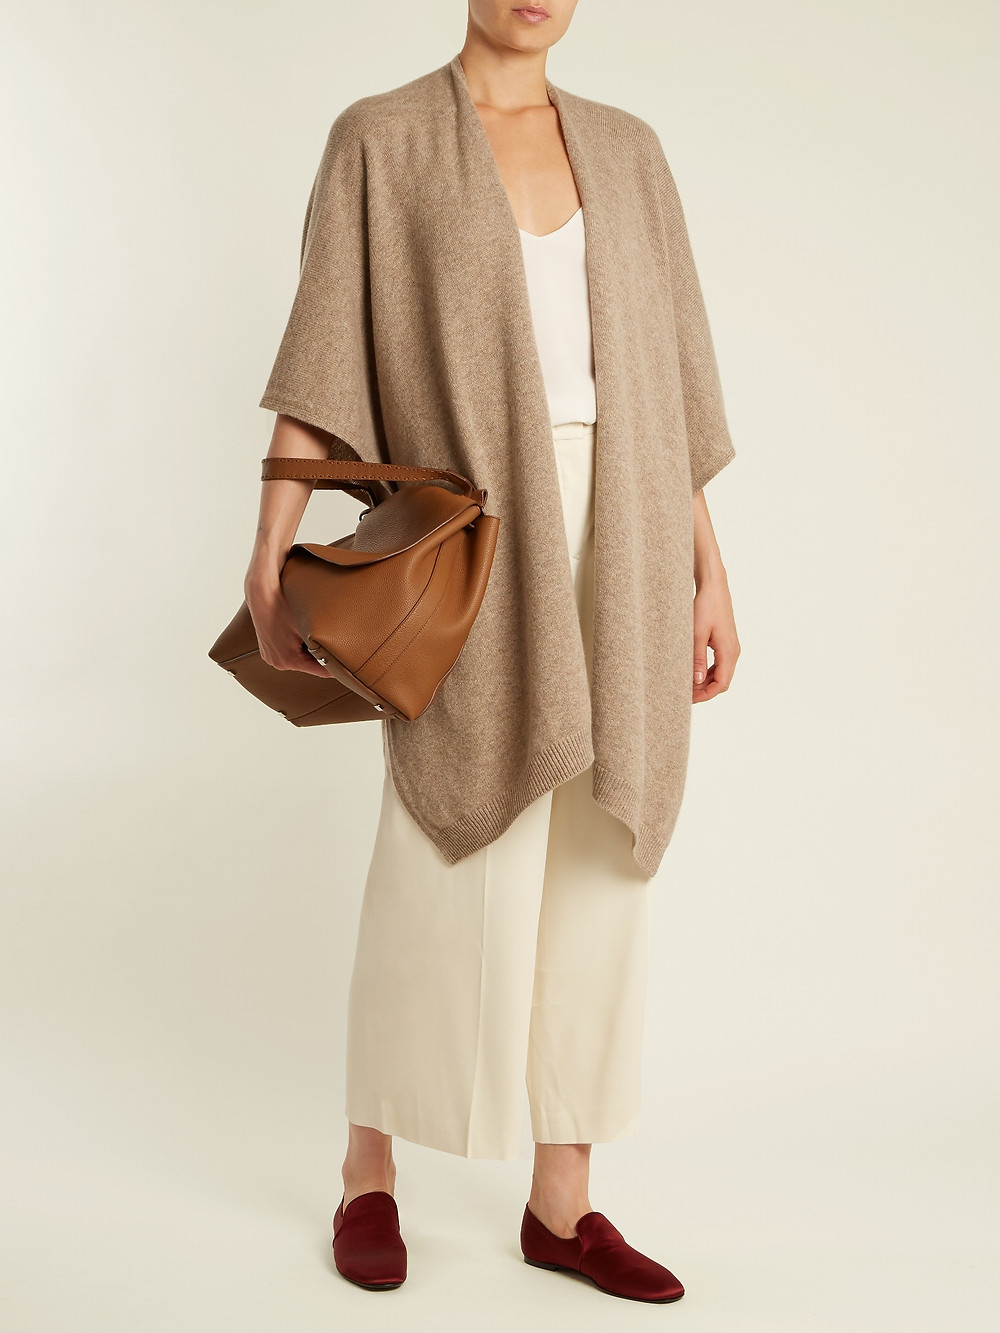 The Row Hern cashmere cape $1,550